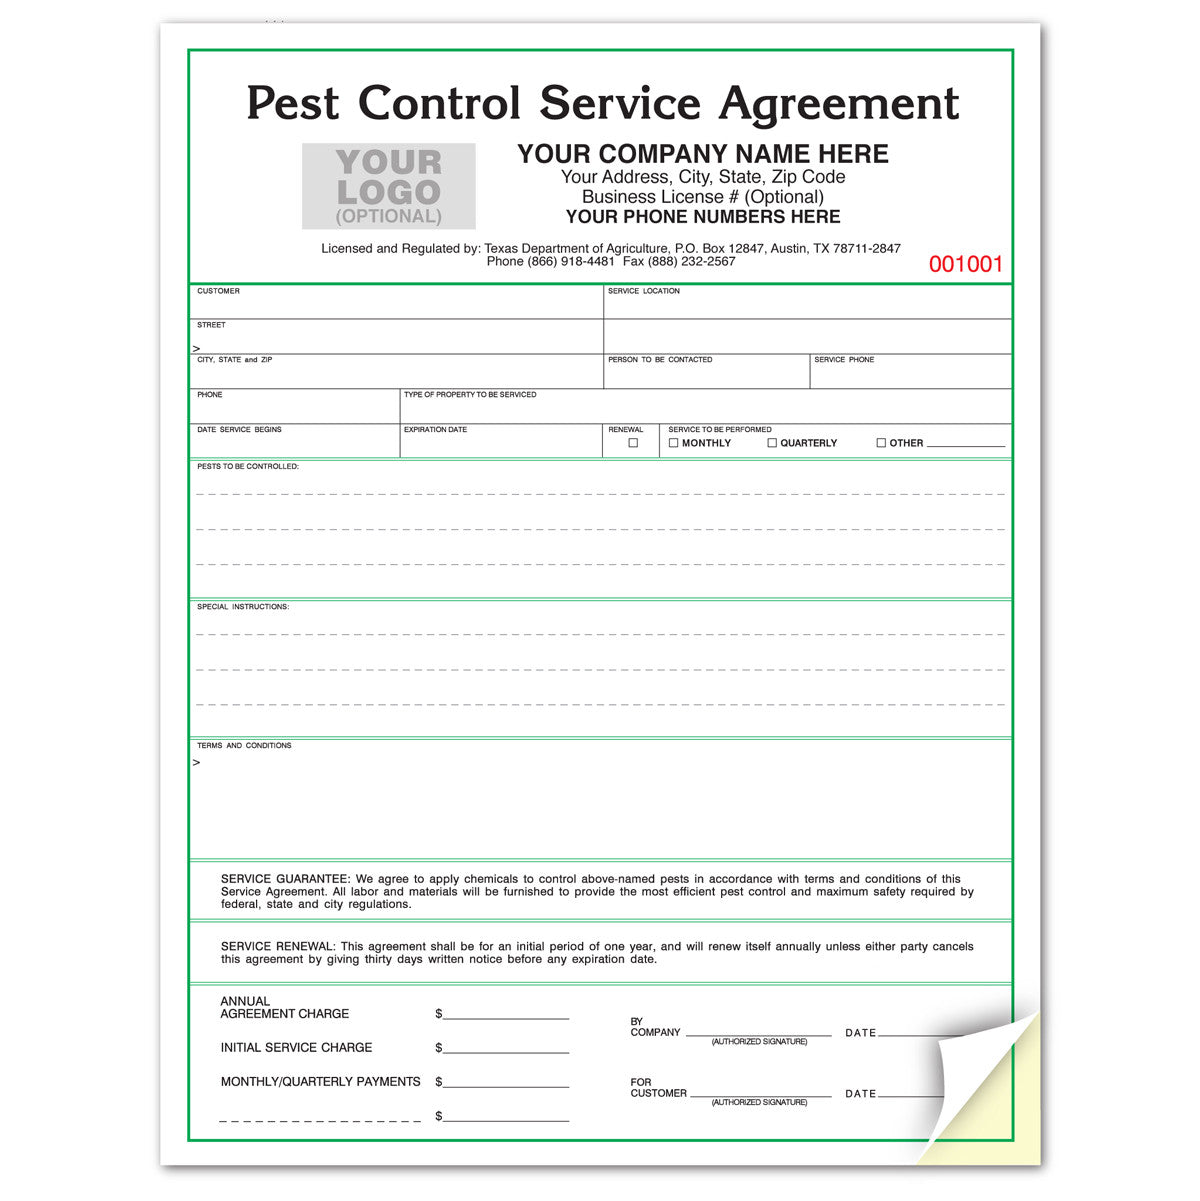 Contracts Pany Contract Template Tolling Agreement 5